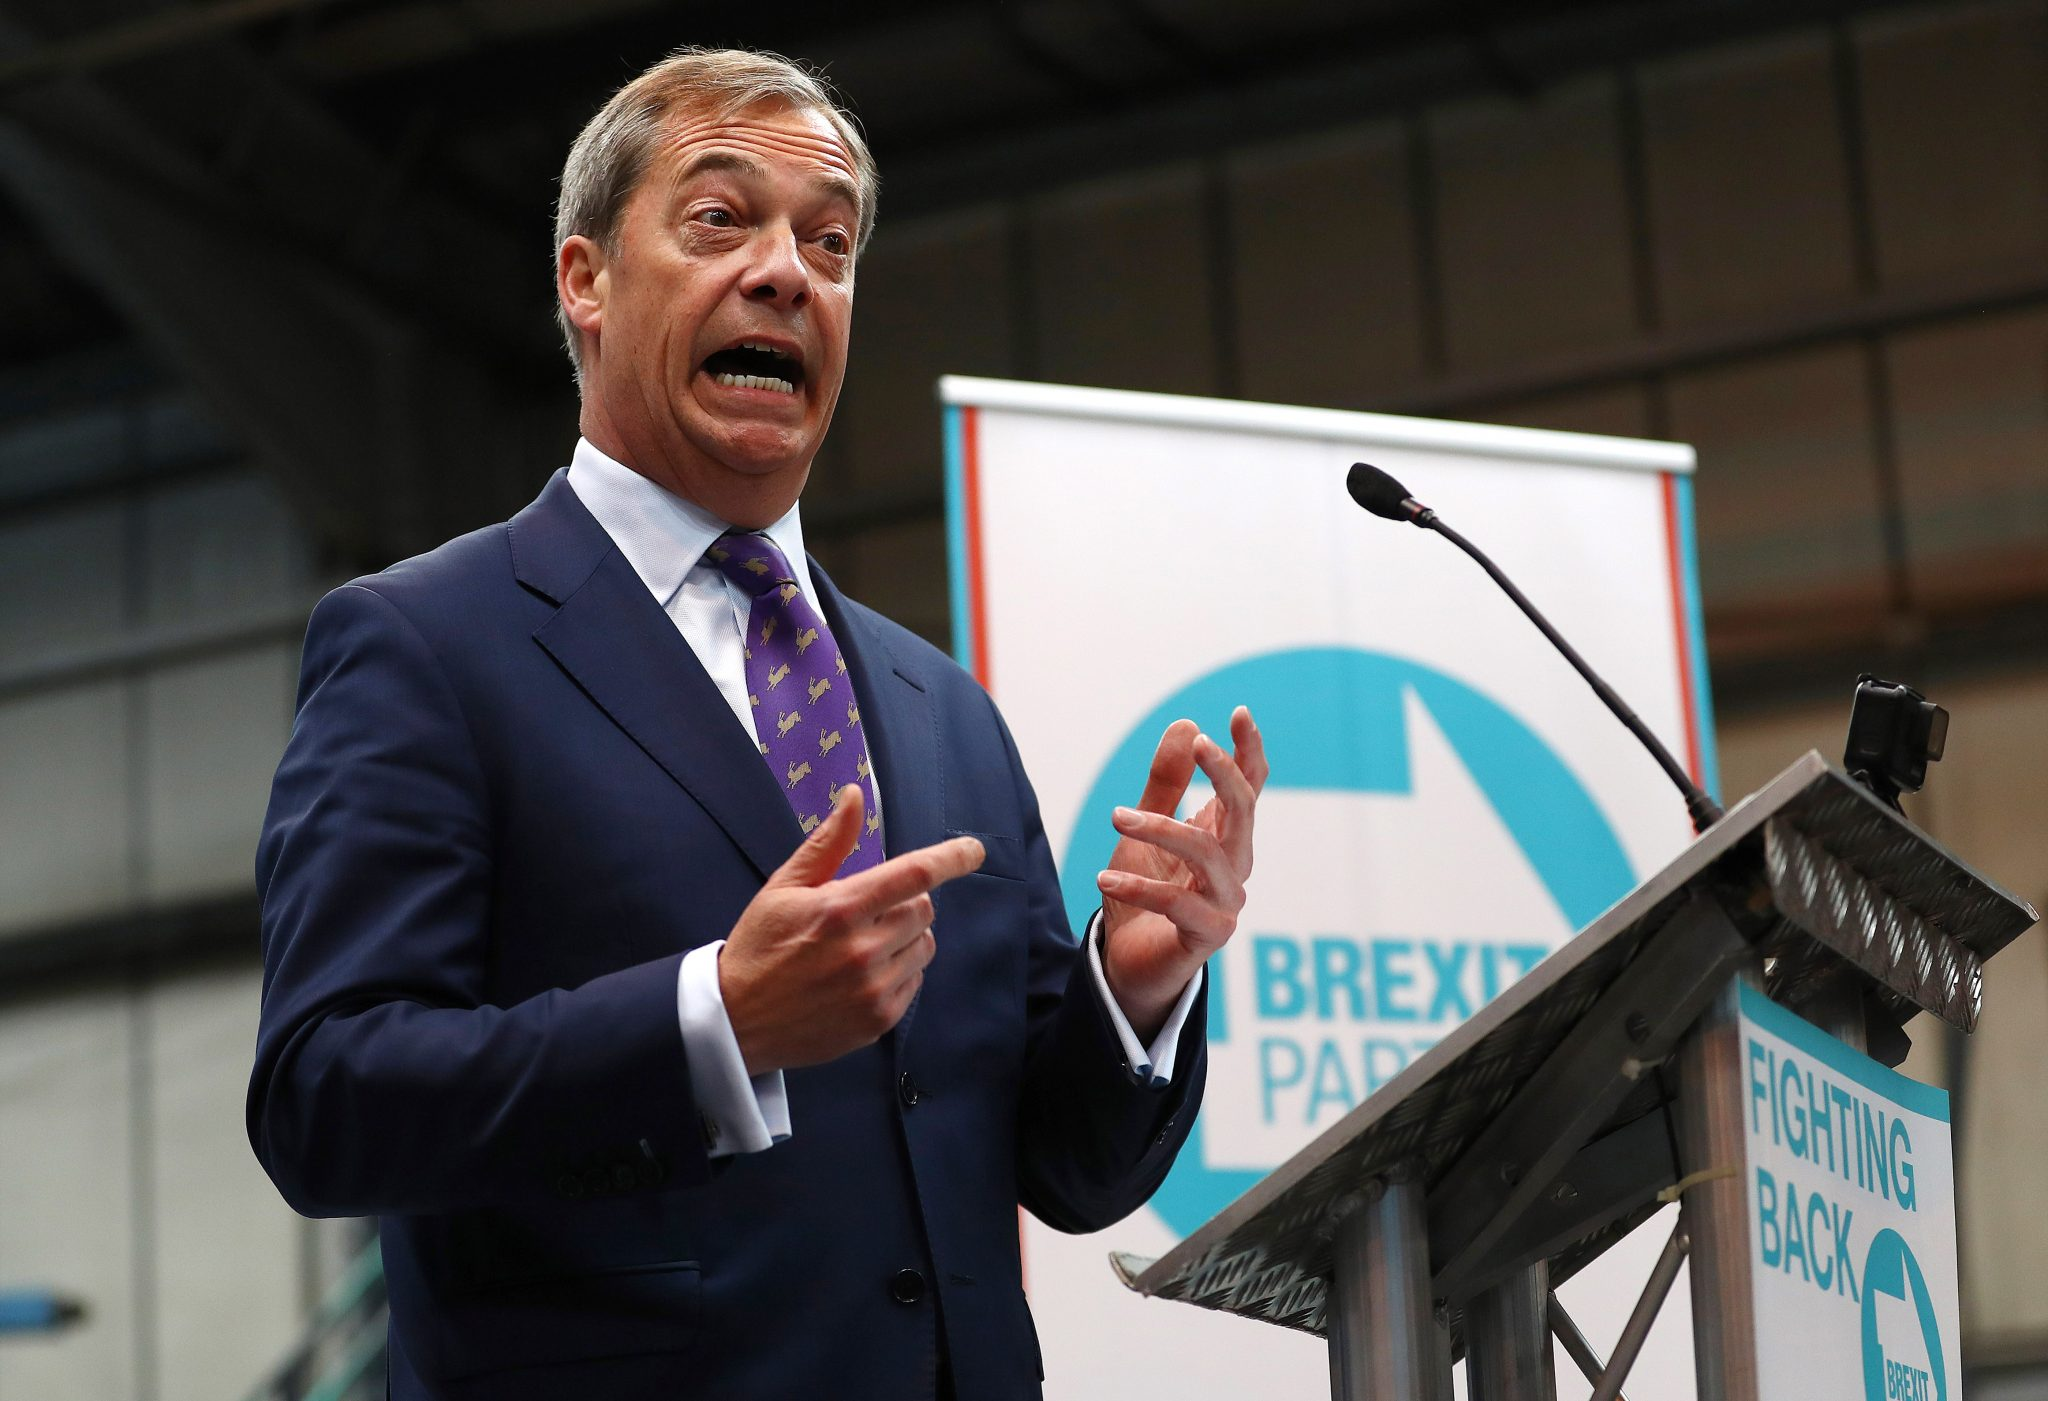 Nigel Farage has bet £1,000 that his Brexit party will secure the most seats (at the European elections Credit: Matthew Lewis)